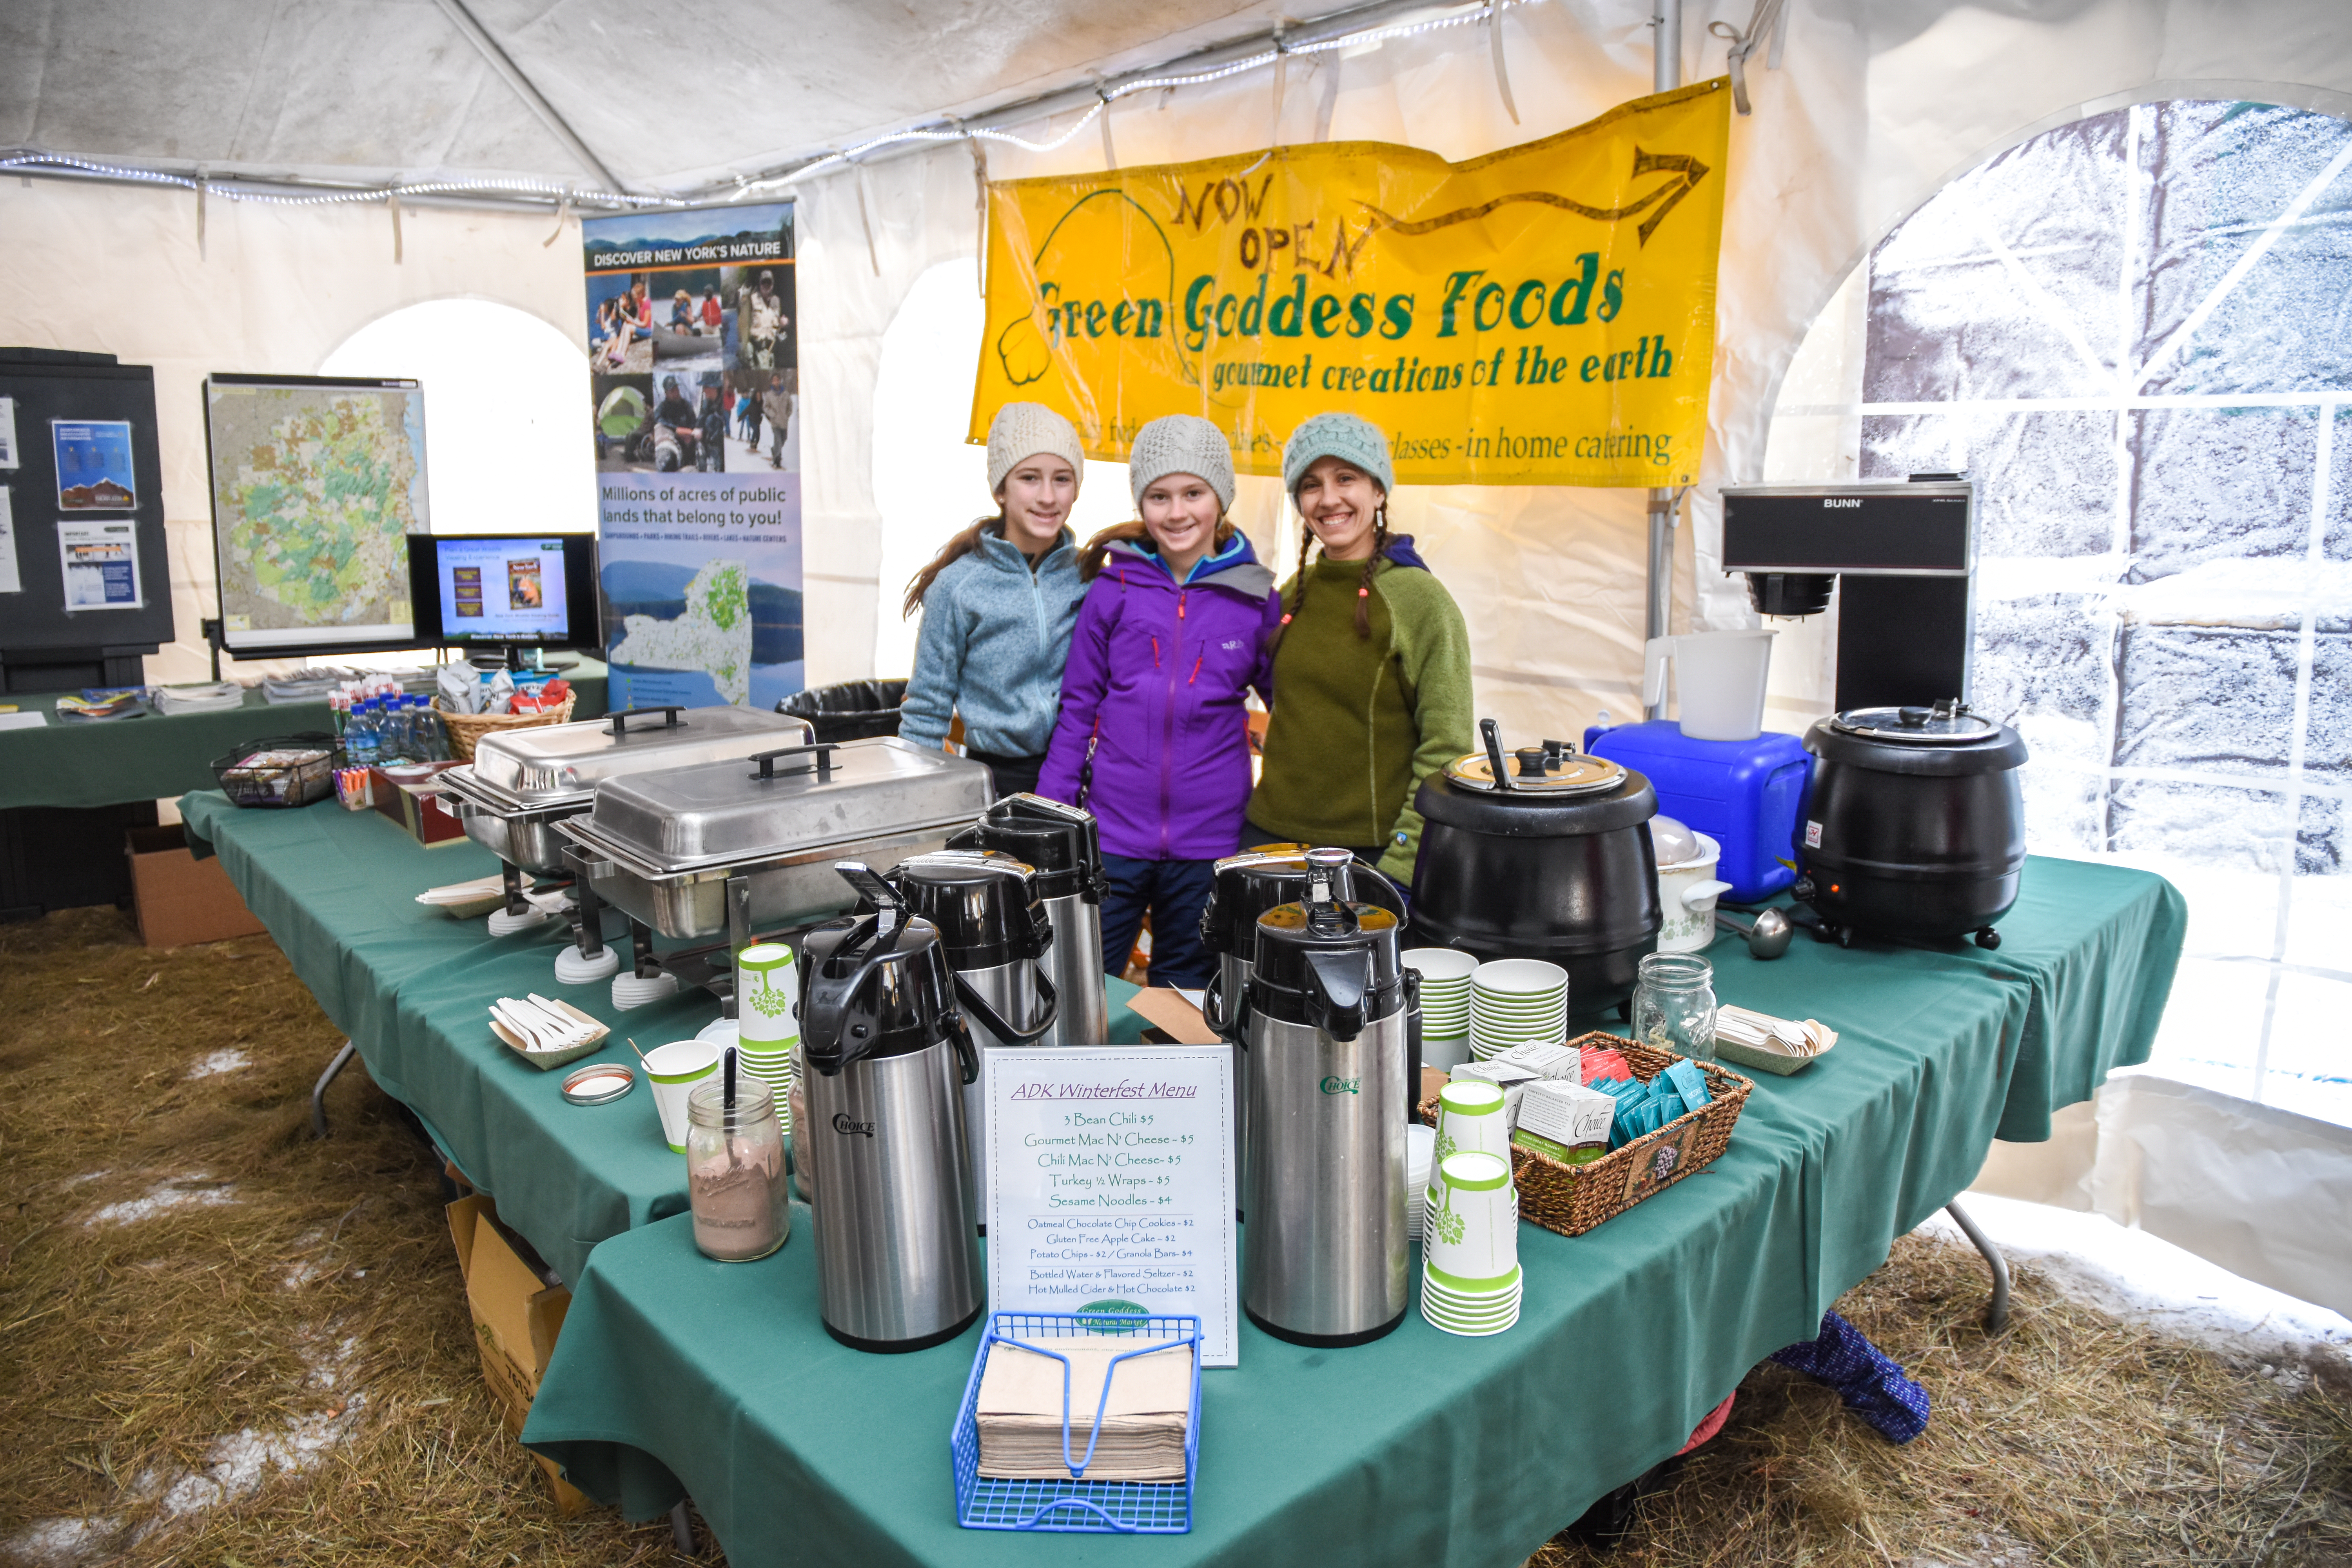 Great food by Green Goddess Foods.  Photo by Seth Jones